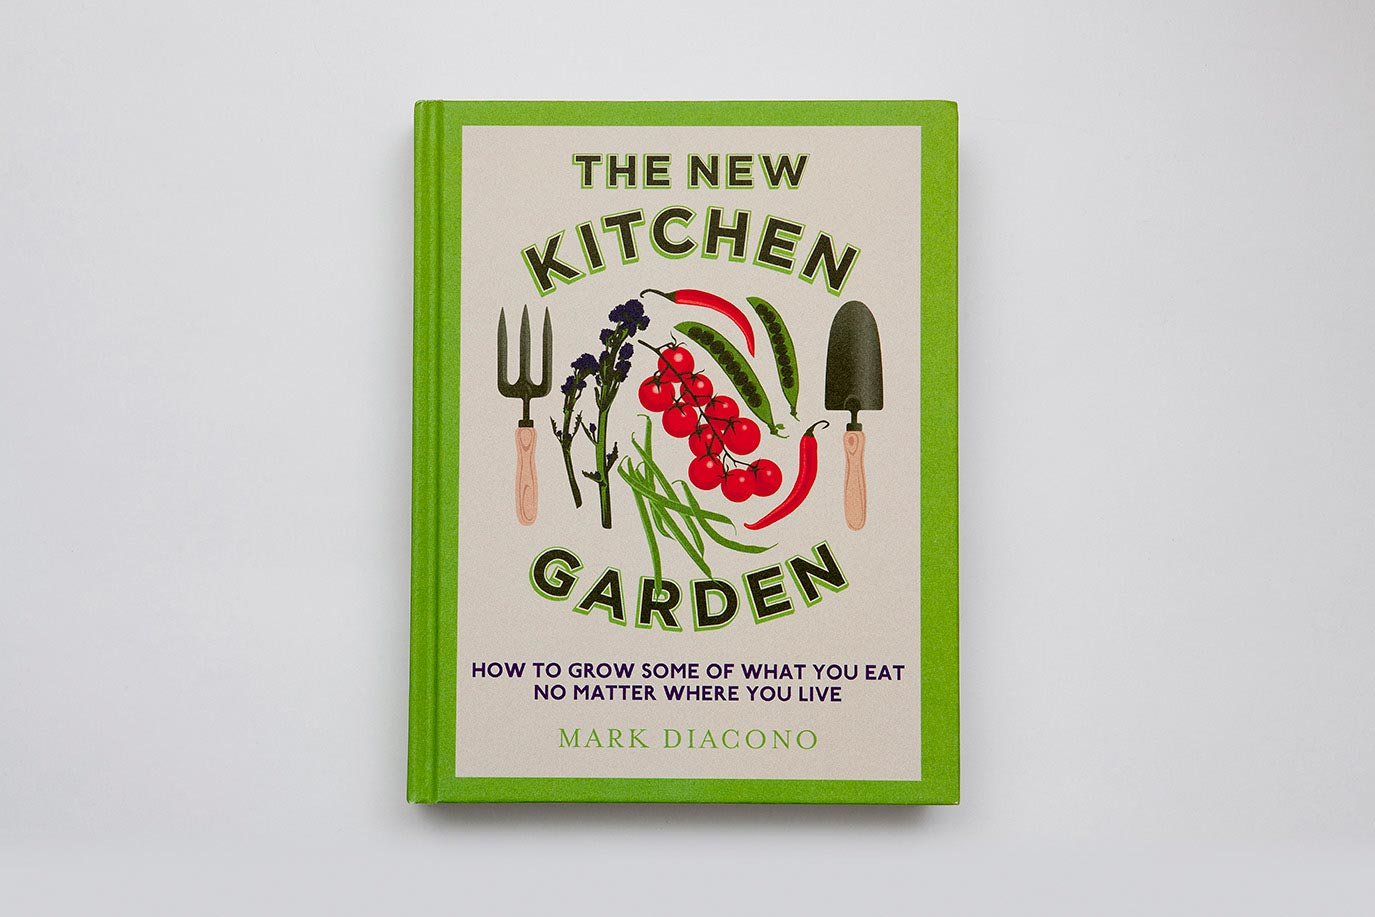 New Kitchen Garden graphic